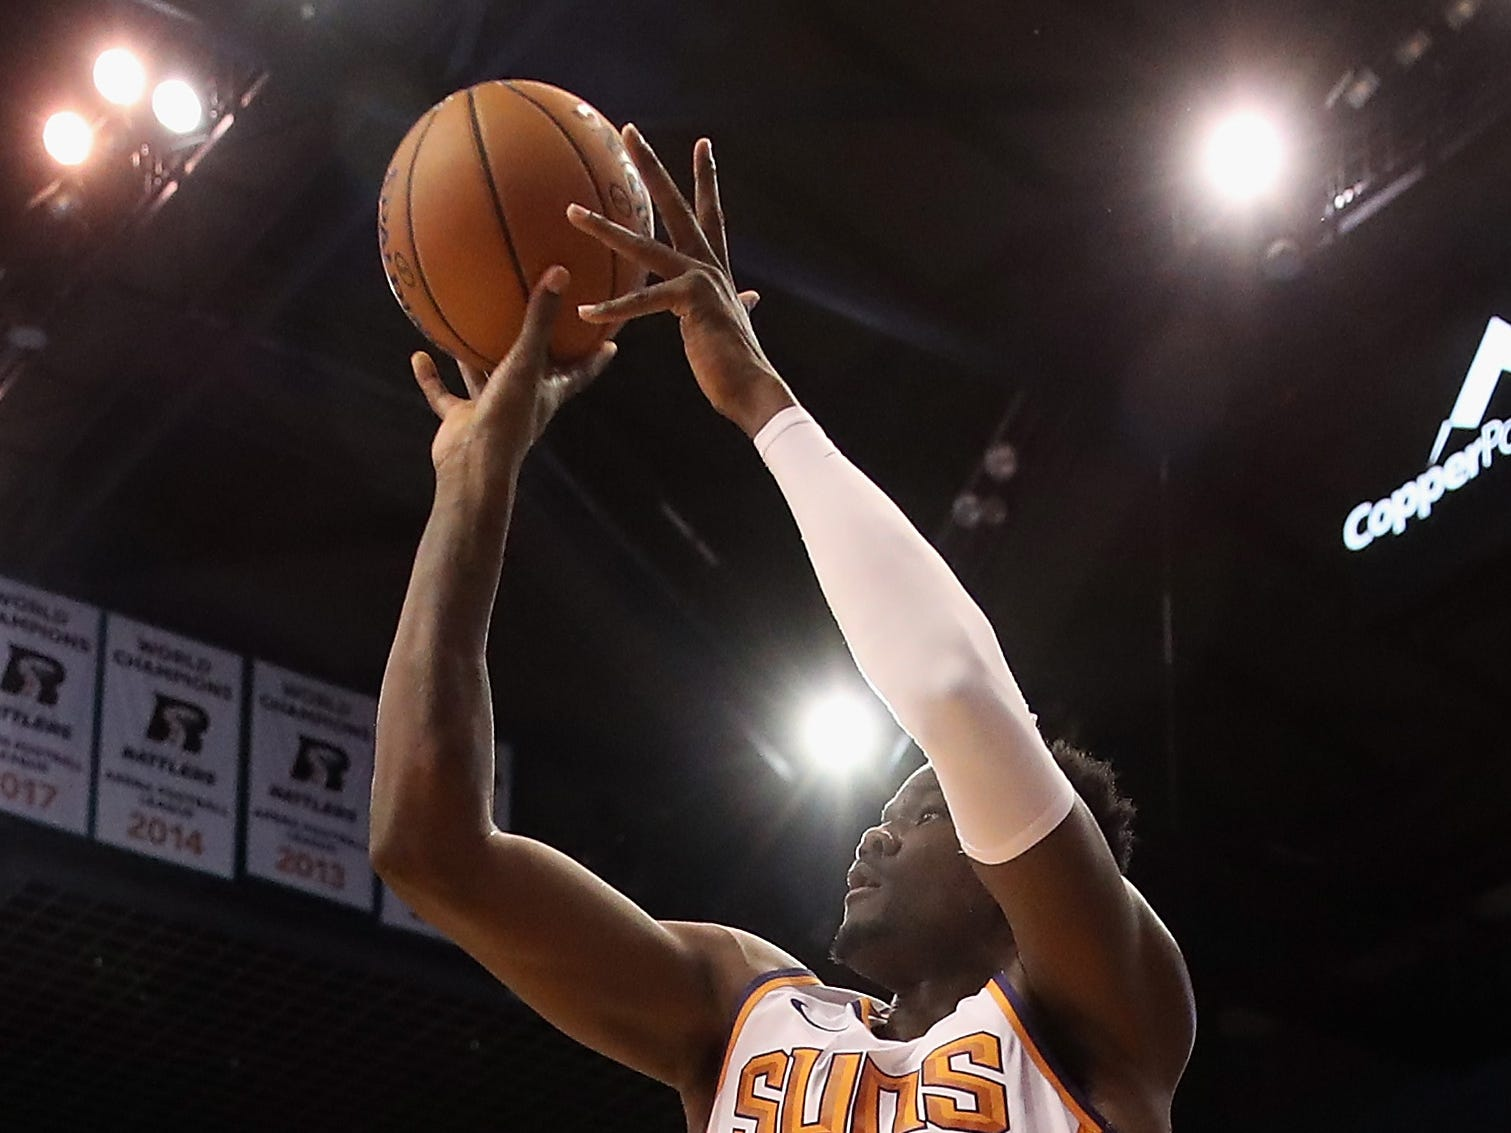 PHOENIX, AZ - OCTOBER 03:  Deandre Ayton #22 of the Phoenix Suns attempts a shot during the first half of the NBA game against the New Zealand Breakers at Talking Stick Resort Arena on October 3, 2018 in Phoenix, Arizona.  NOTE TO USER: User expressly acknowledges and agrees that, by downloading and or using this photograph, User is consenting to the terms and conditions of the Getty Images License Agreement.  (Photo by Christian Petersen/Getty Images)